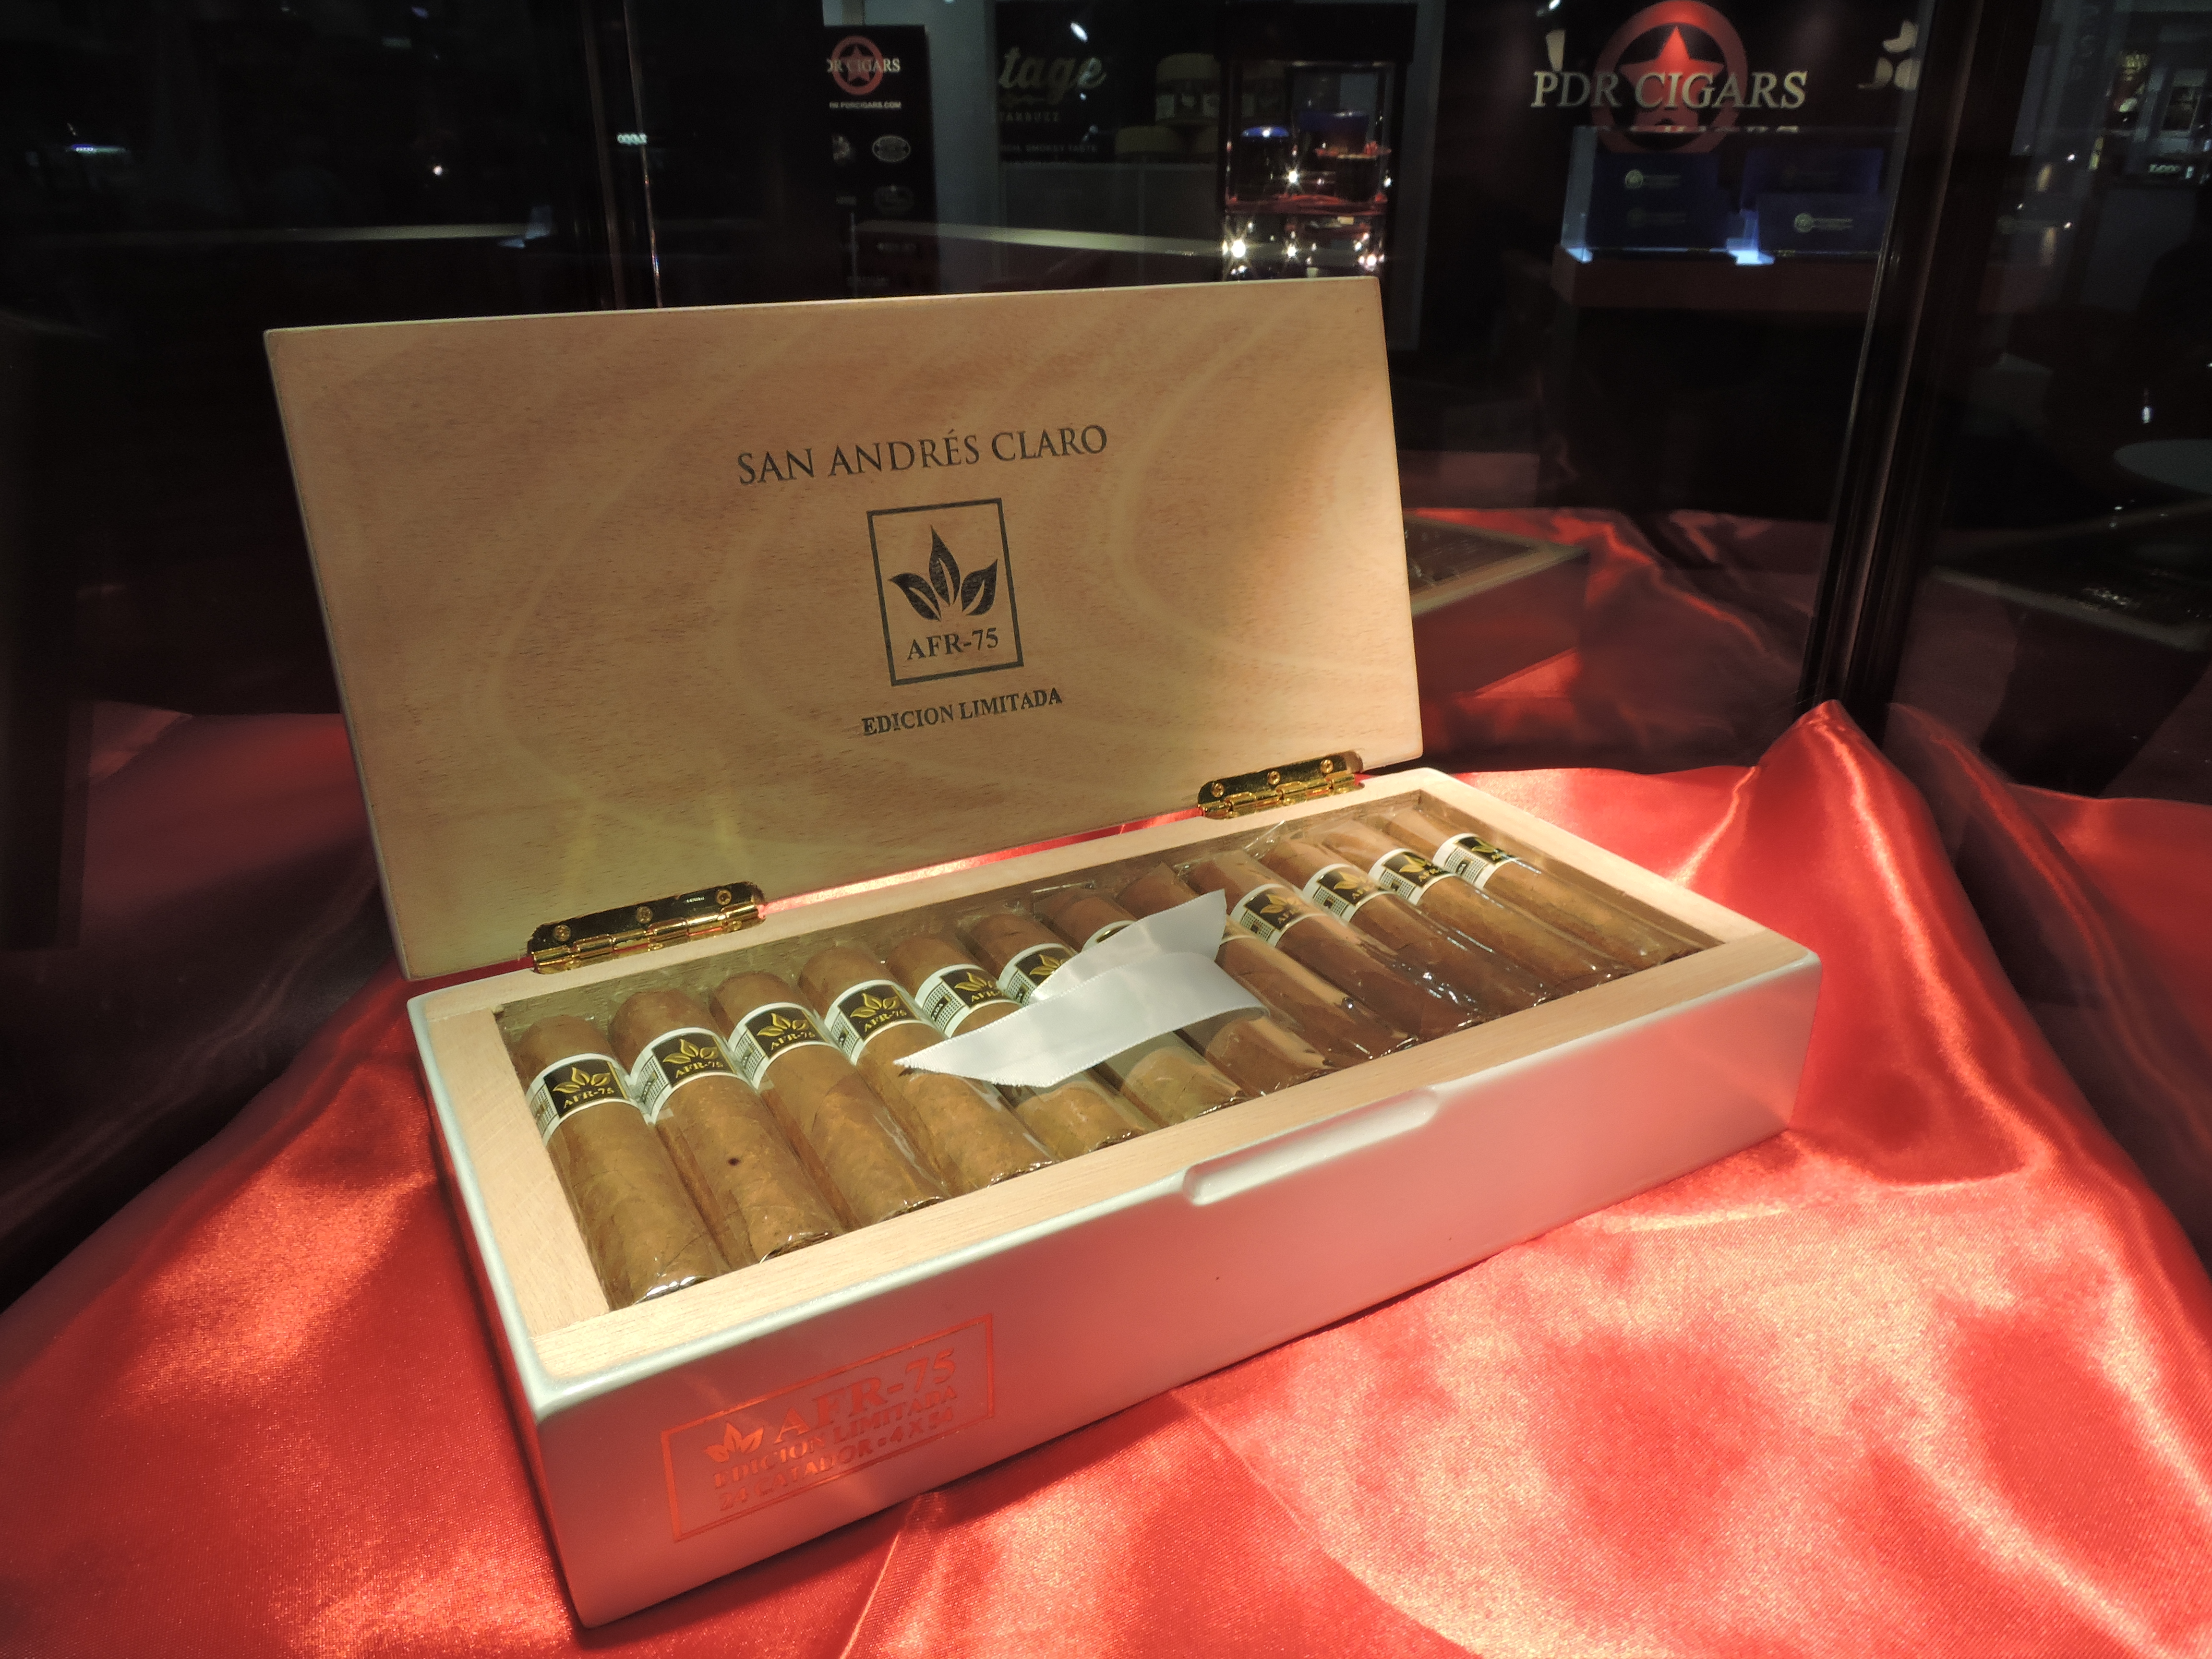 AFR-75_Claro_by_PDR_Cigars